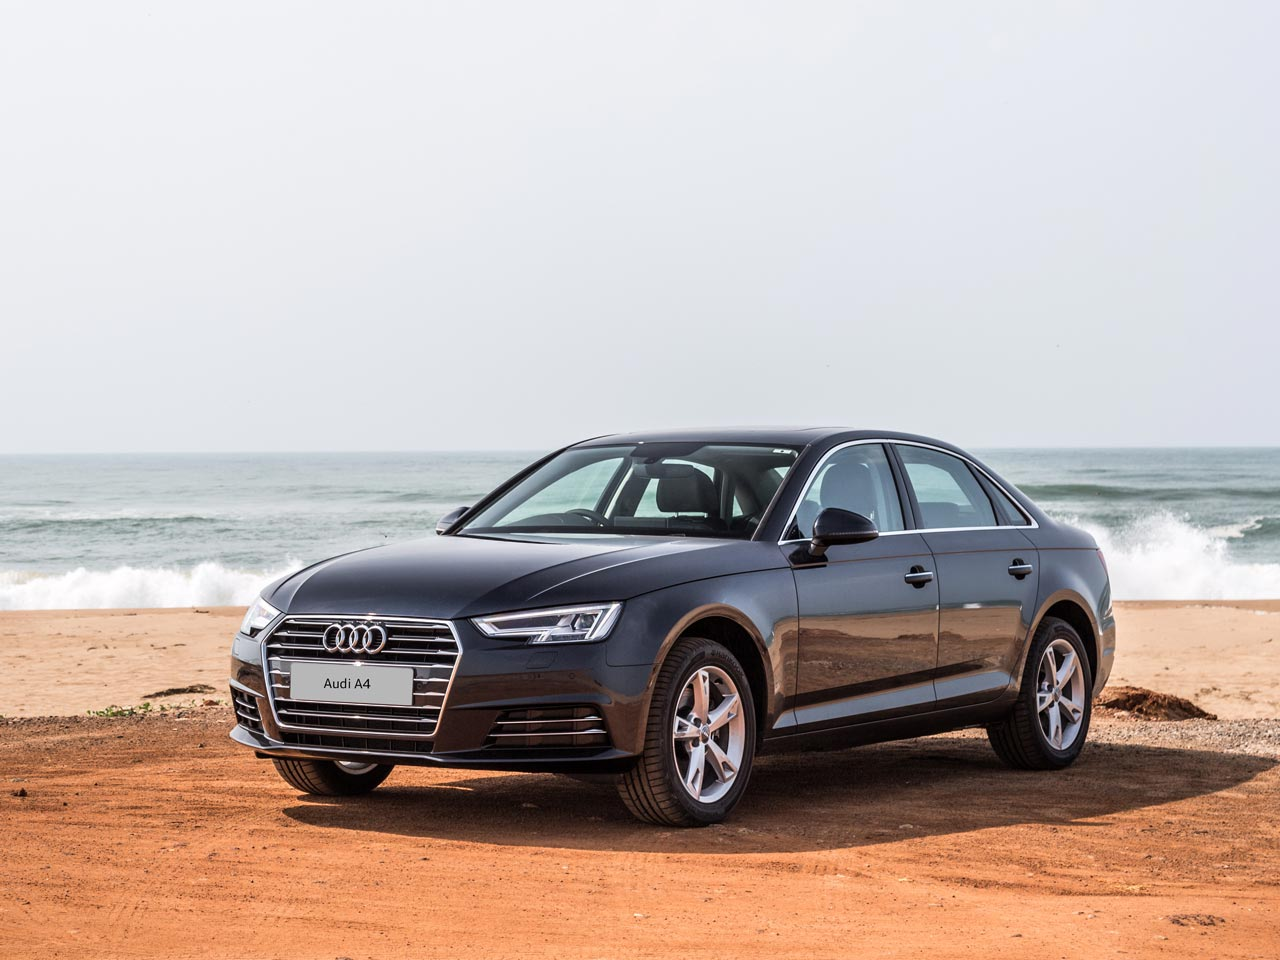 audi india launches the all new audi a4 35tdi at inr 40 2 lakhs autobics. Black Bedroom Furniture Sets. Home Design Ideas